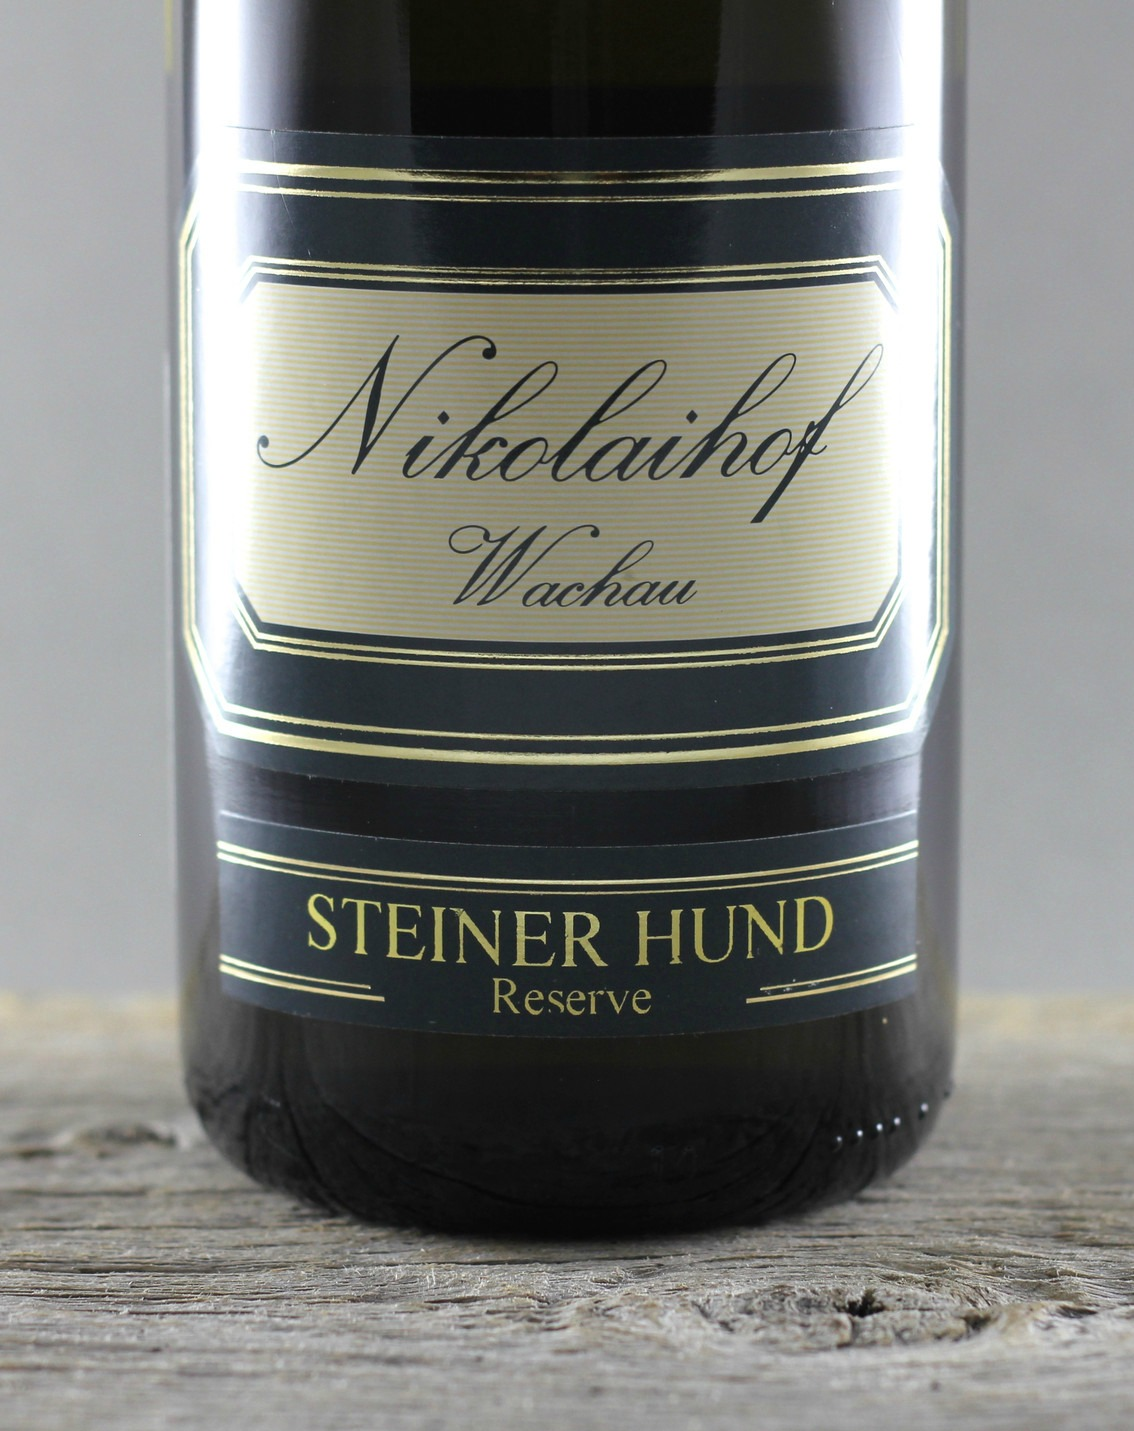 Nikolaihof Riesling Steiner Hund Reserve 2013,  (VN97) from The BPW - Merchants of rare and fine wines.